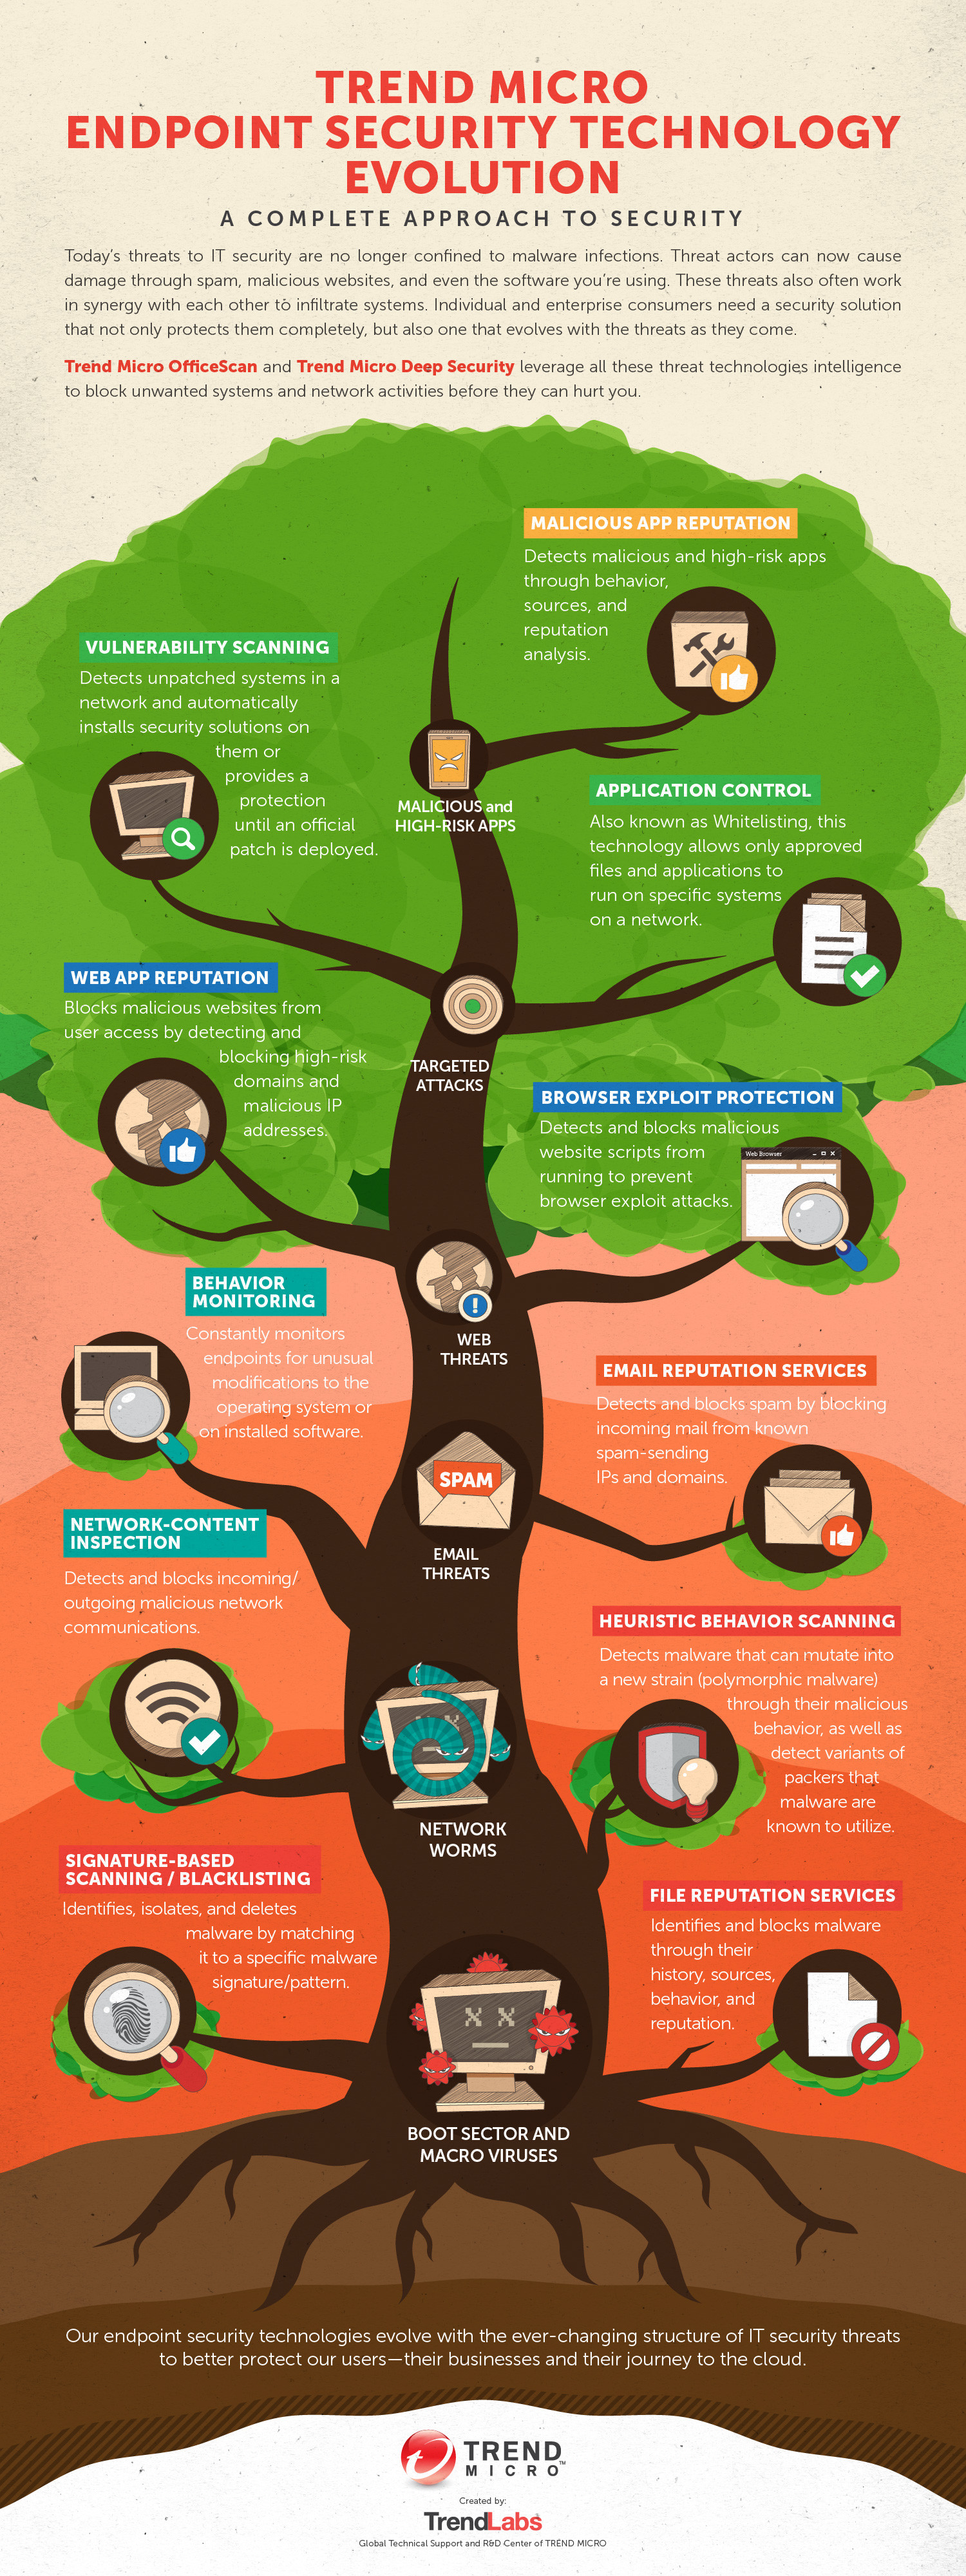 Endpoint Security Technology Evolution Infographic